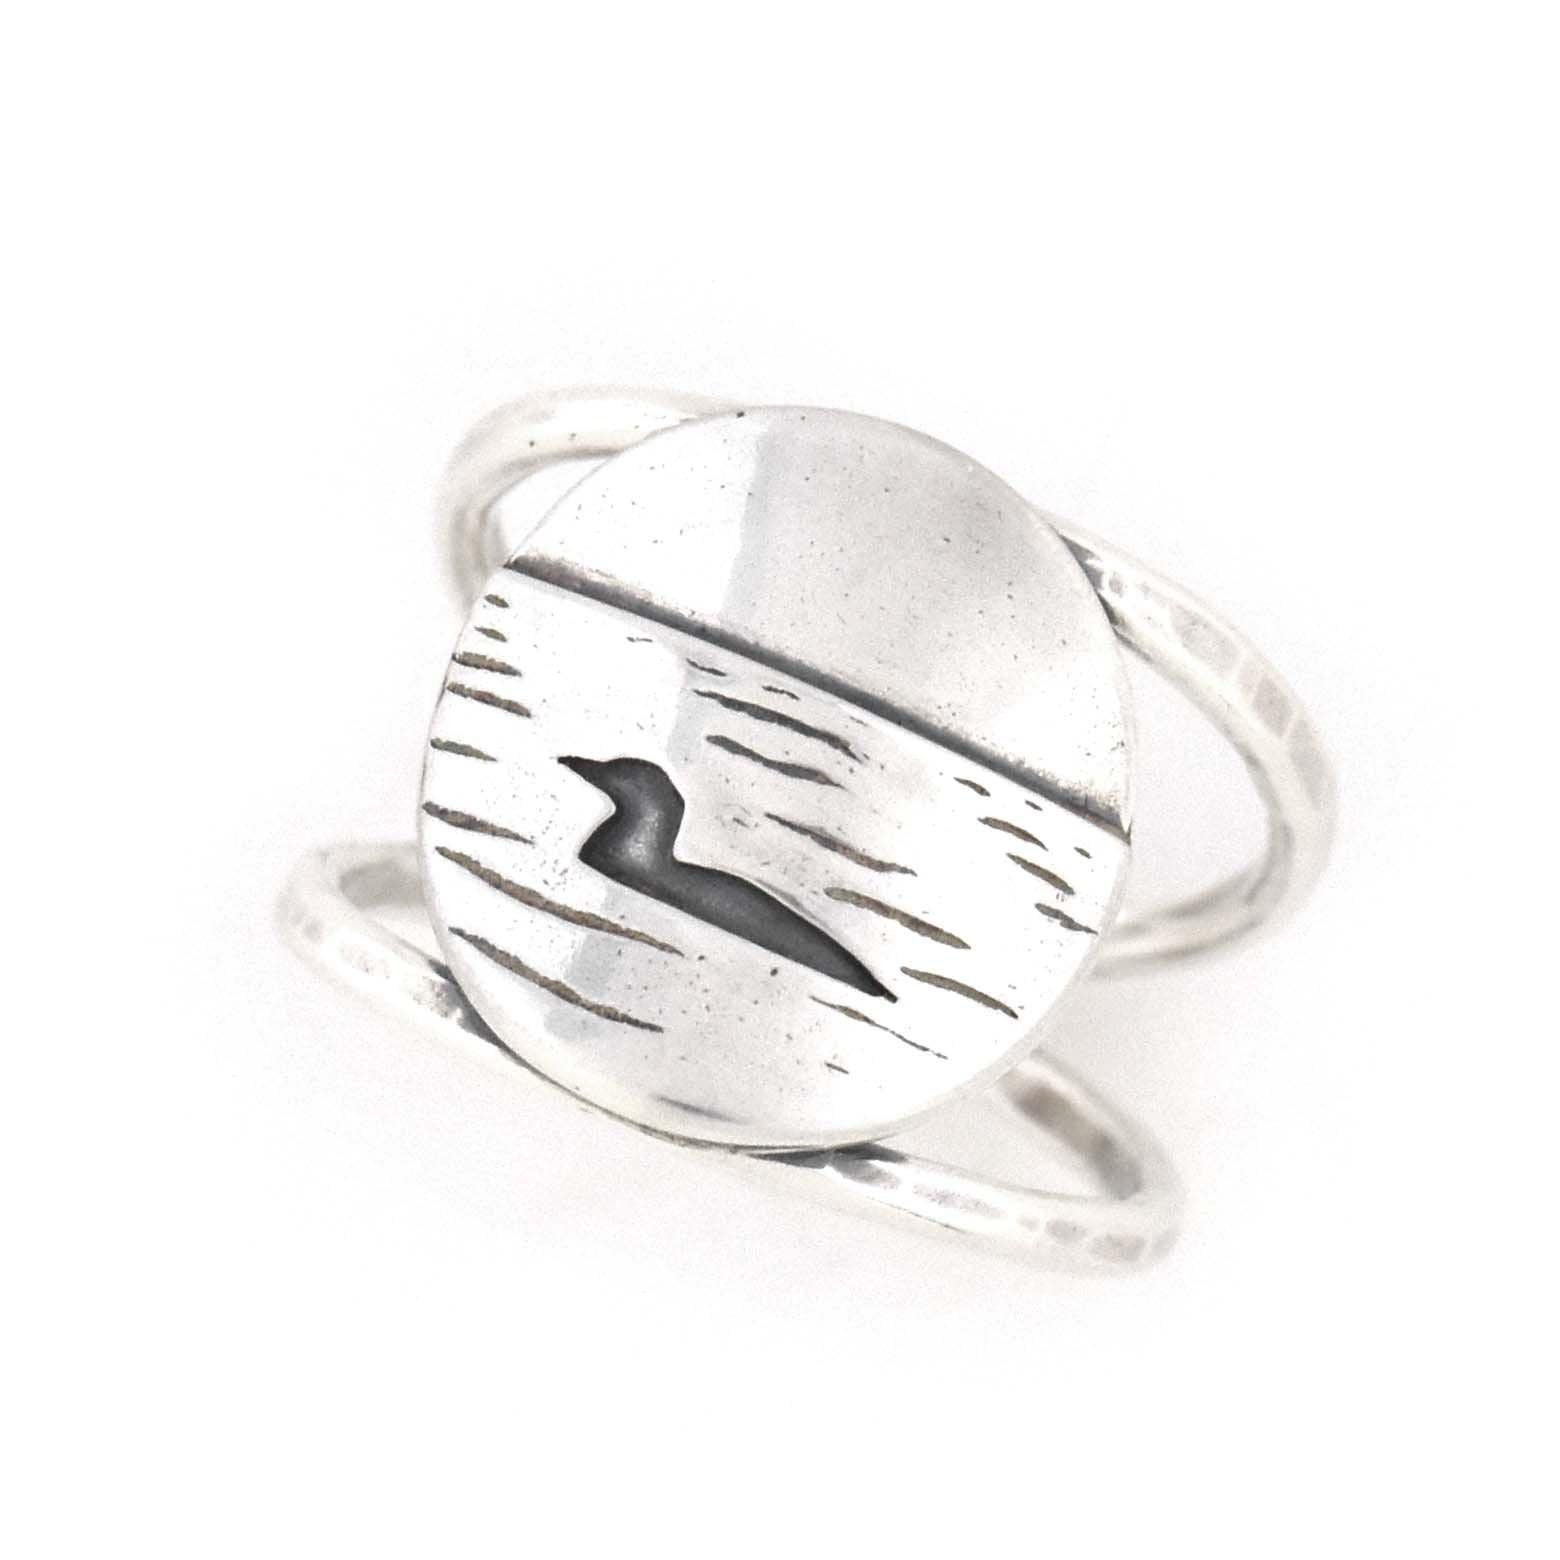 Loon Lake Ring, Ring handmade by Beth Millner Jewelry